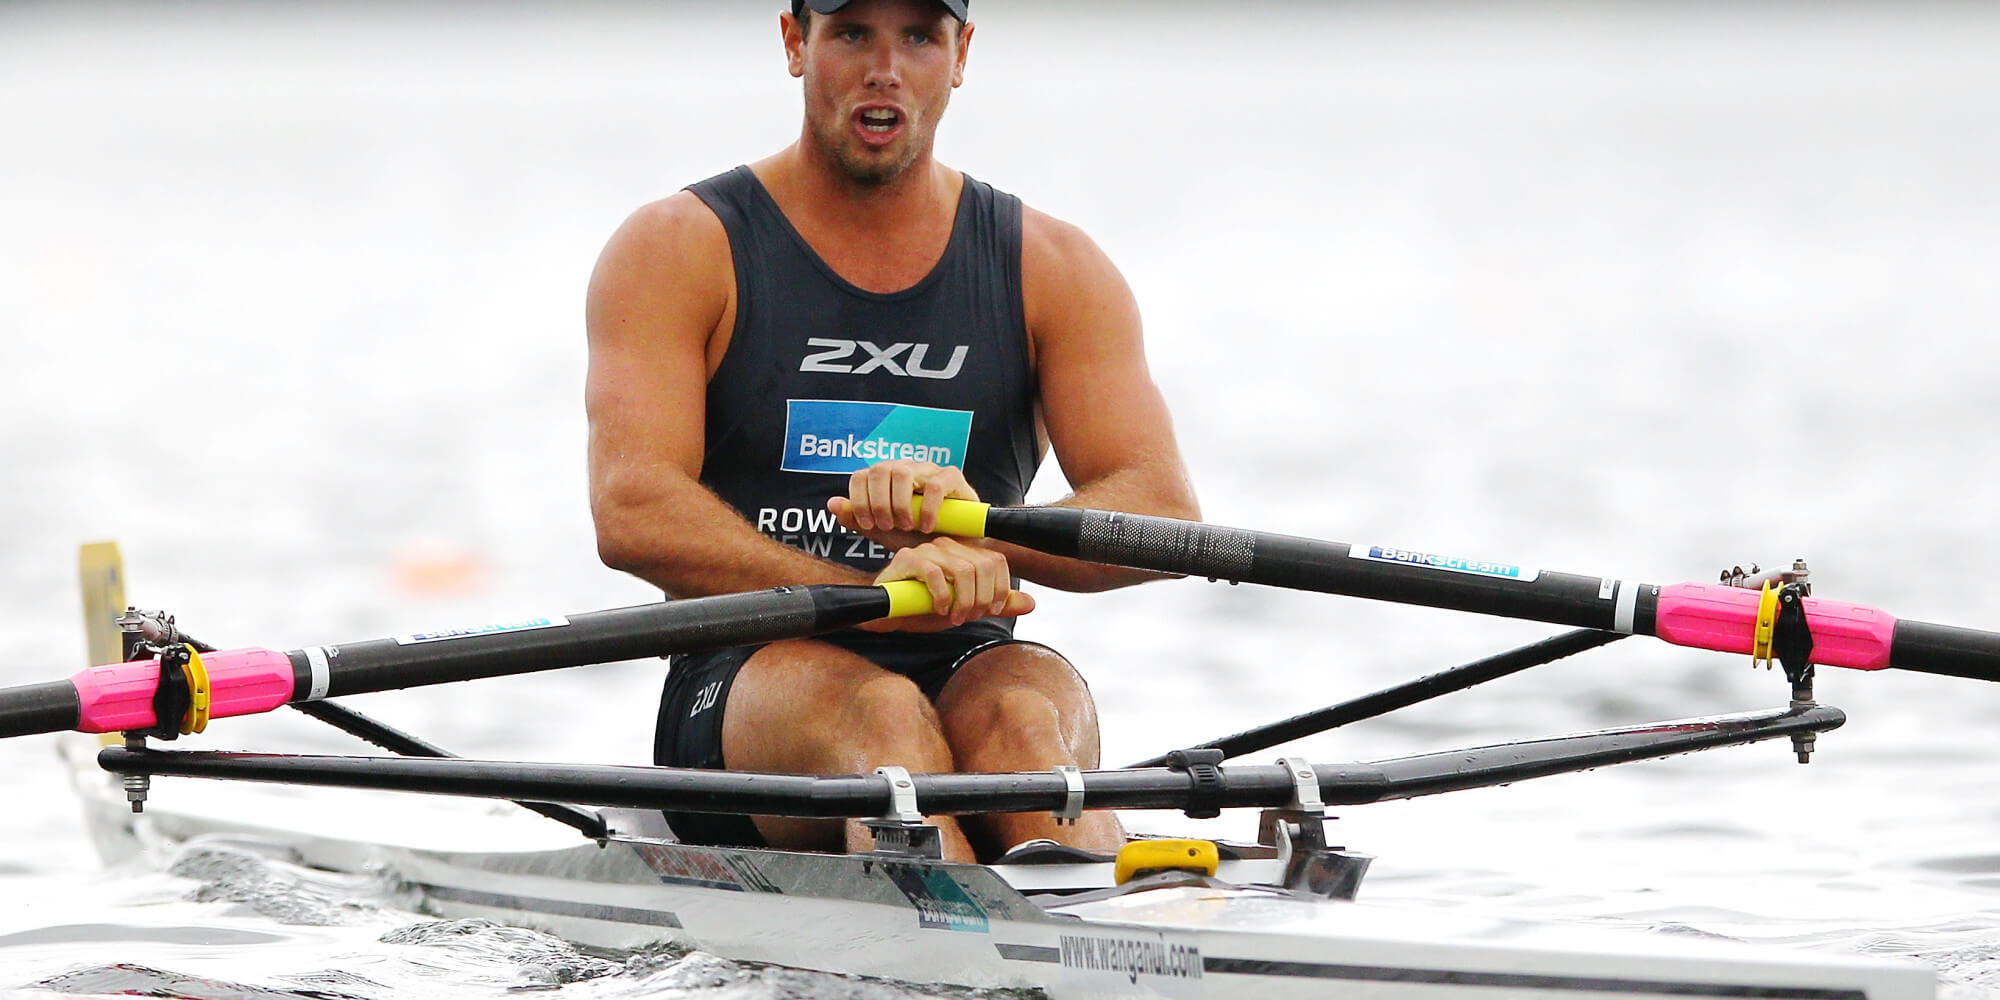 CAMBRIDGE, NEW ZEALAND - JANUARY 26: Robbie Manson competes during the Mens premier single sculls final at Lake Karapiro on January 26, 2014 in Cambridge, New Zealand. (Photo by Anthony Au-Yeung/Getty Images)